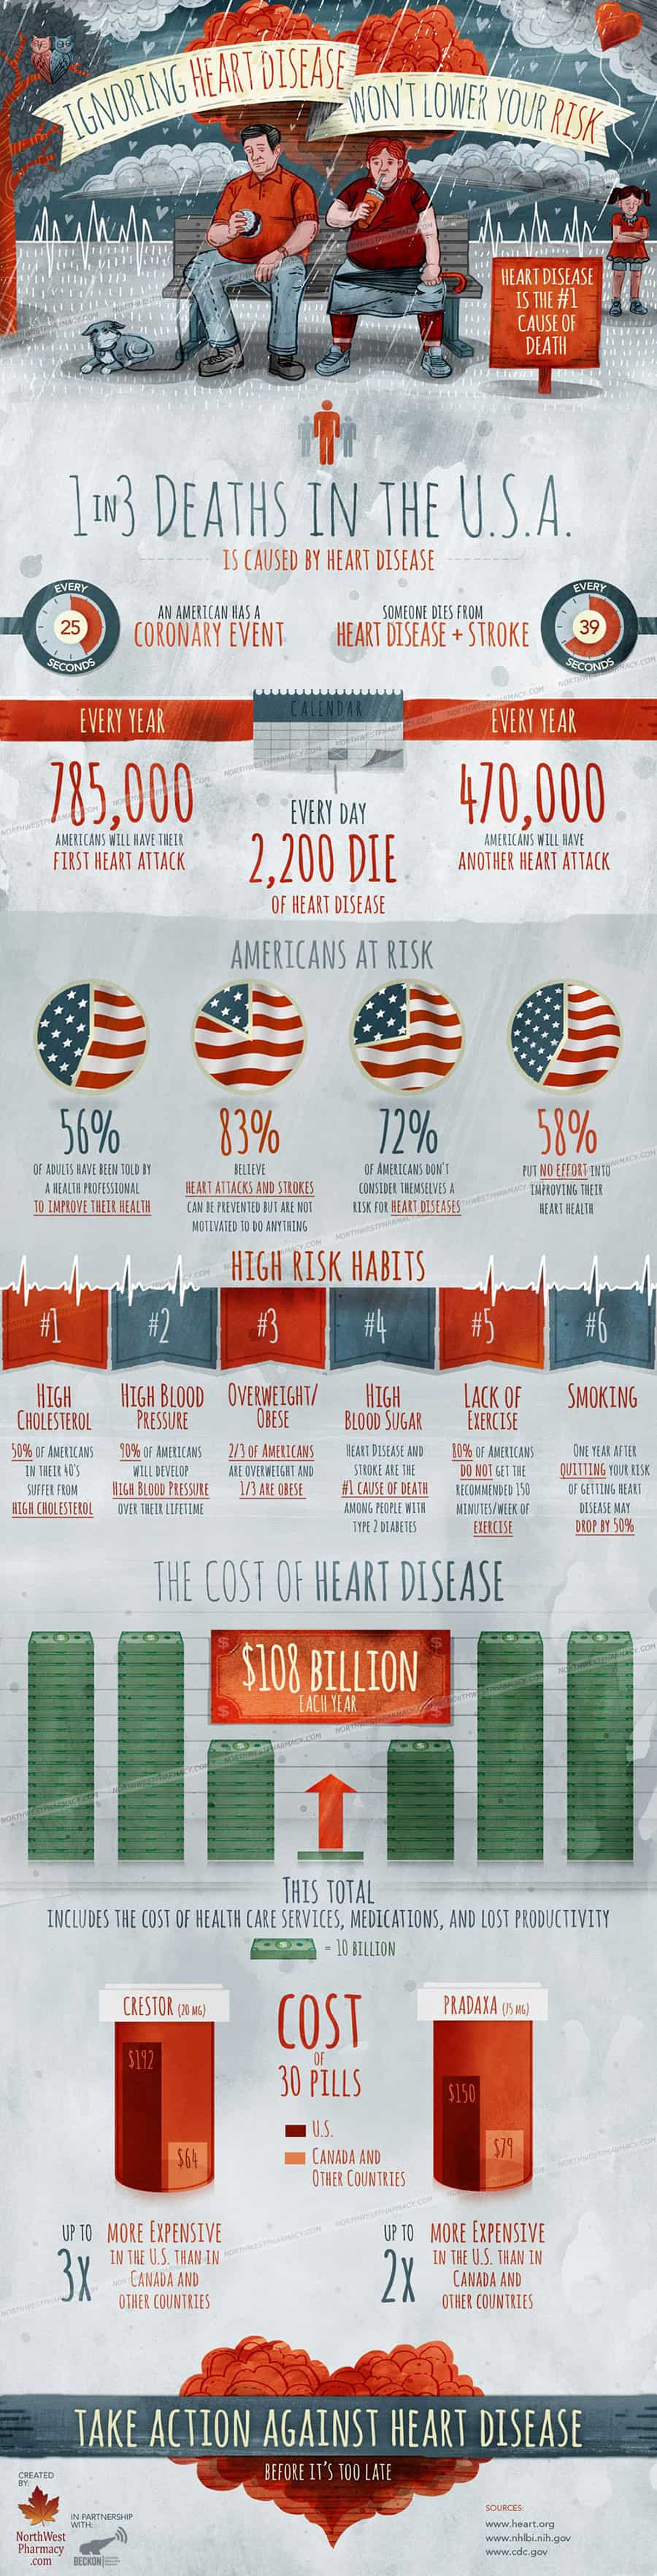 An infographic explaining the prevalence of heart disease in the US.